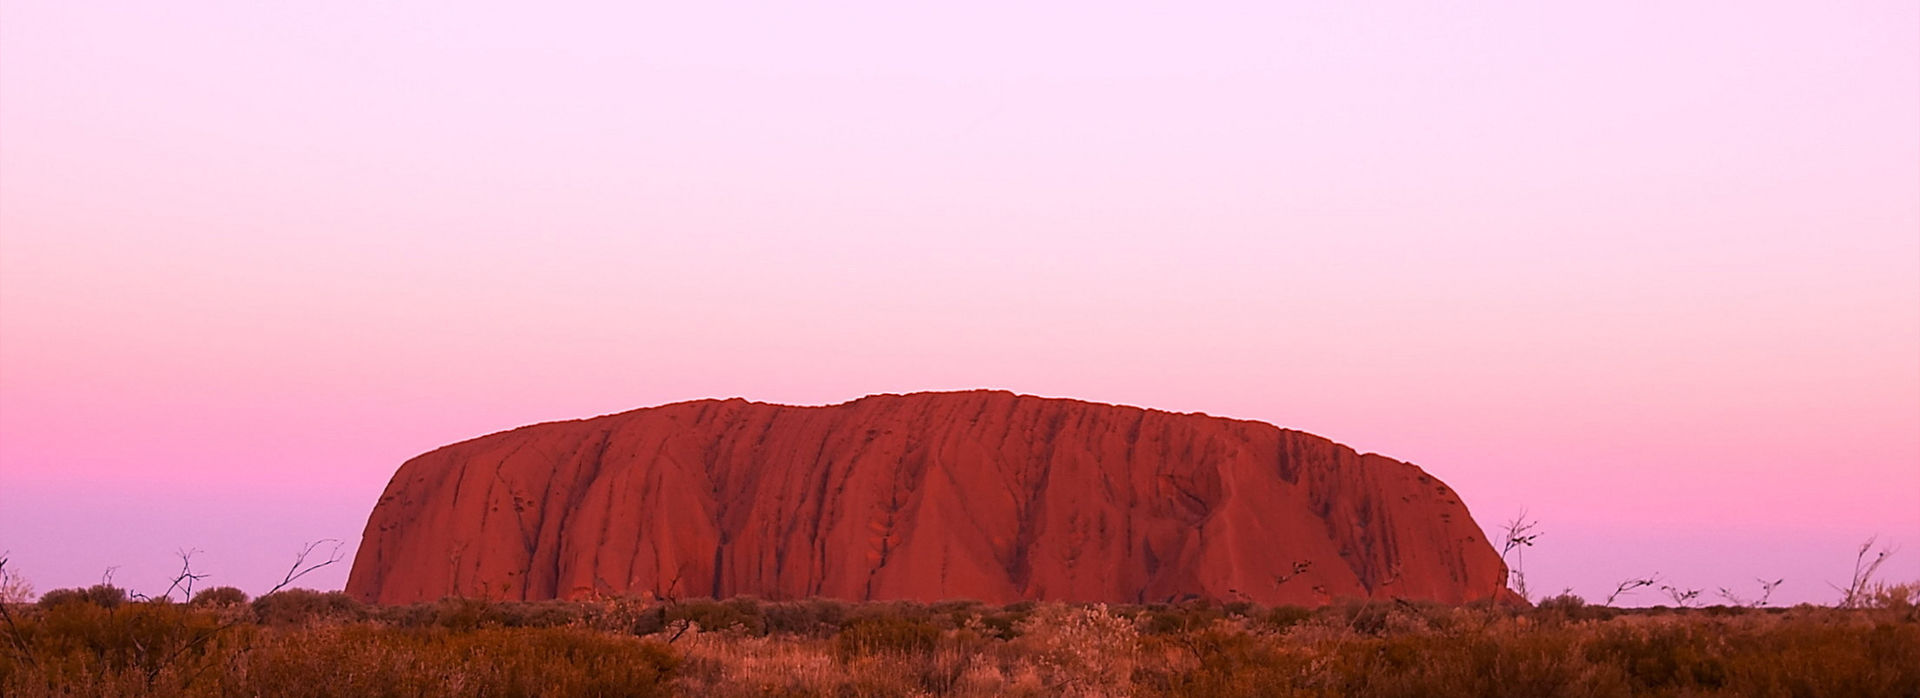 Australia NT Ayers Rock at sunset23